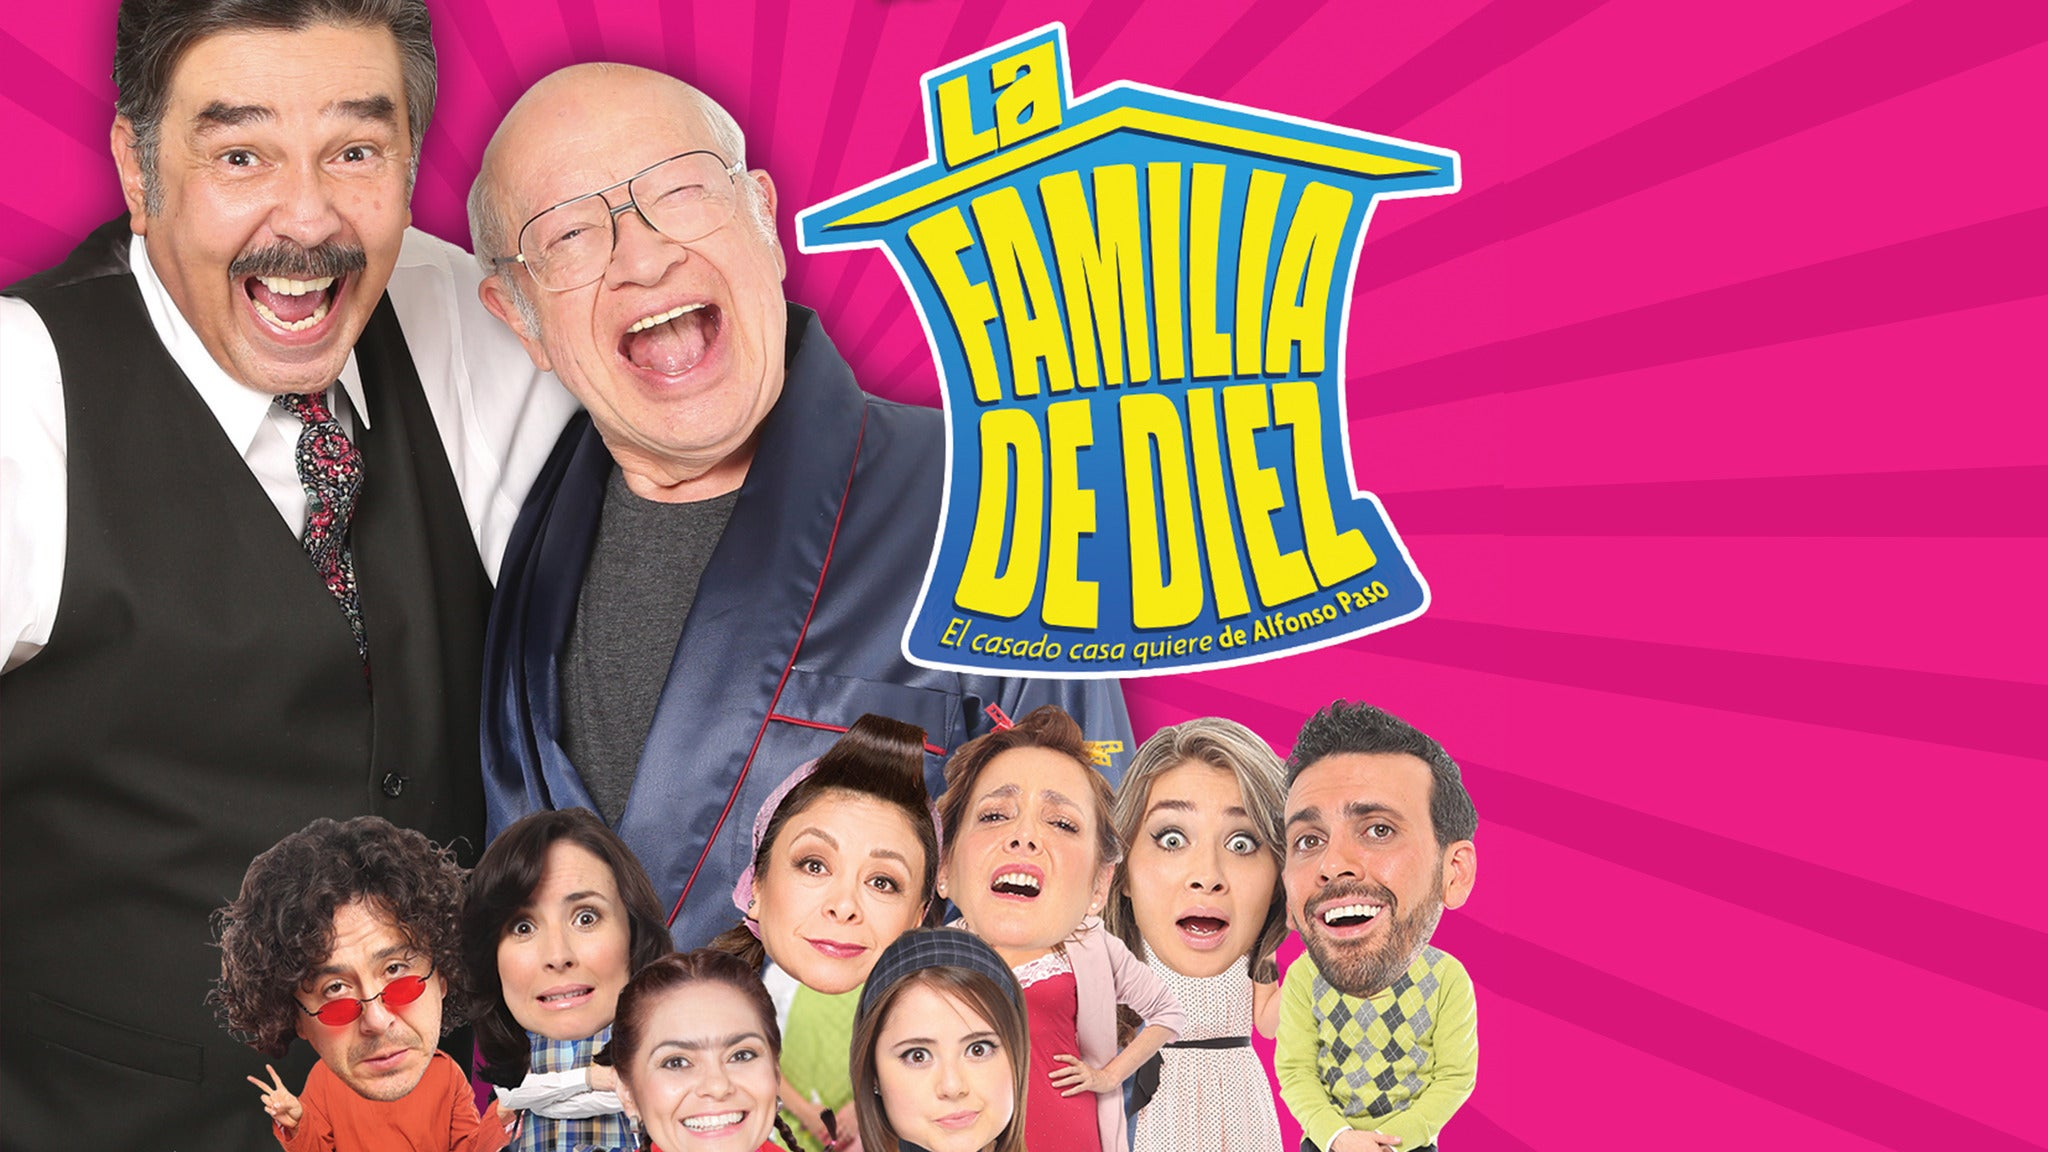 La Familia de Diez at Fox Performing Arts Center